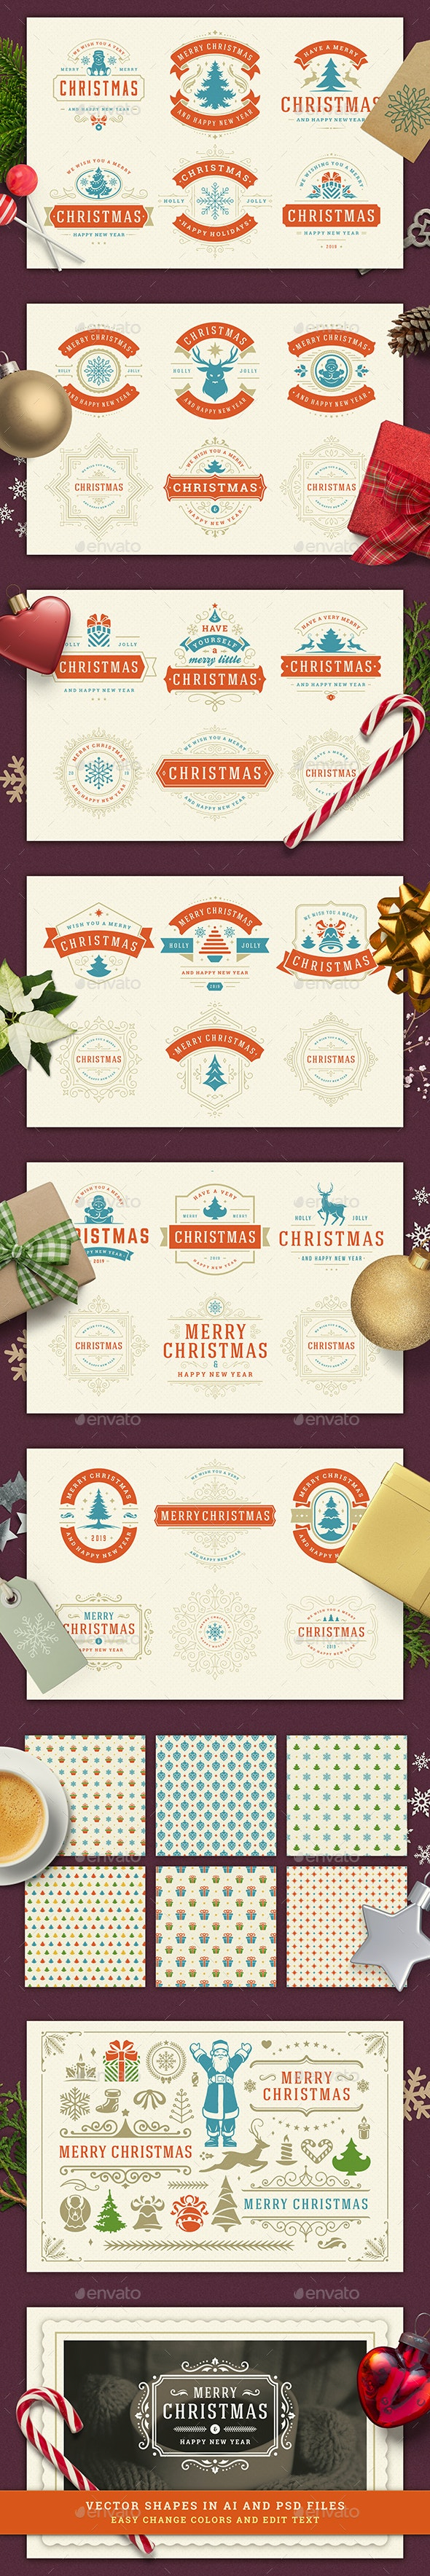 Christmas Retro Design Set - Badges & Stickers Web Elements